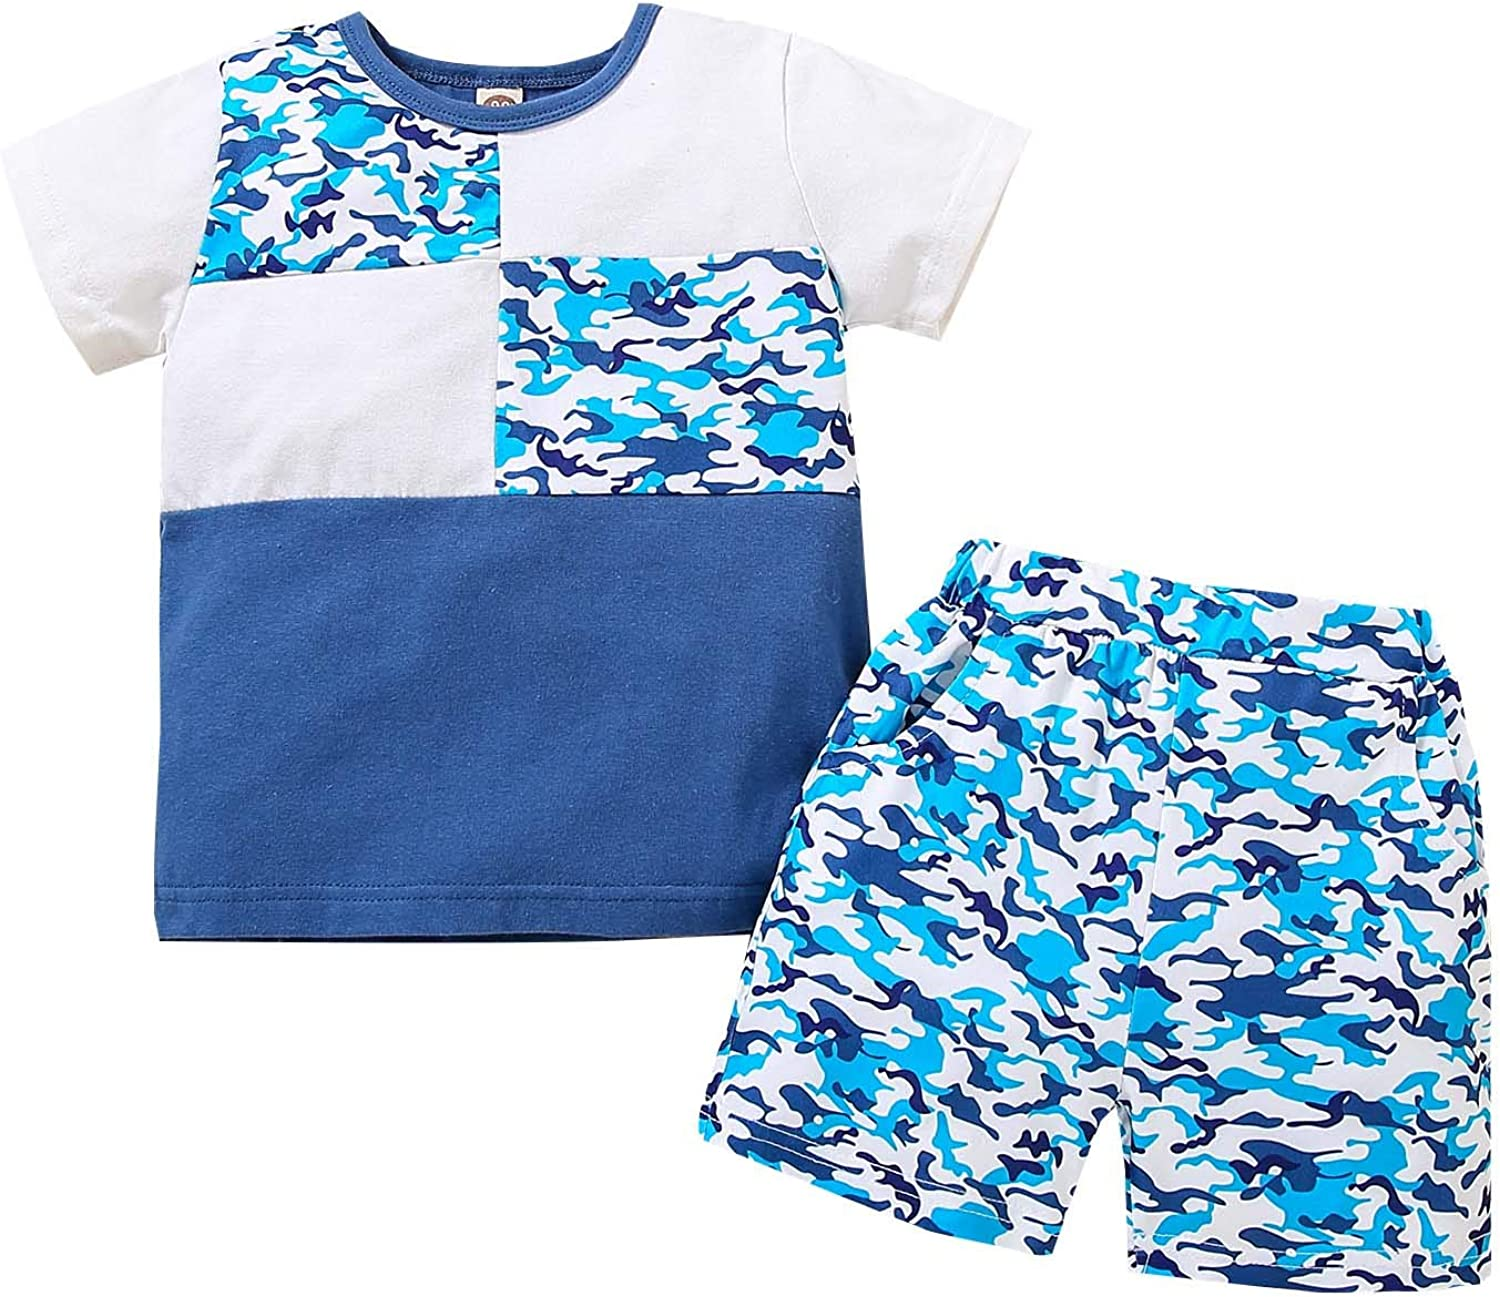 Autumn Winter Toddler Boys Clothes Set Camouflage Print Max 45% OFF Recommendation T-Shirt